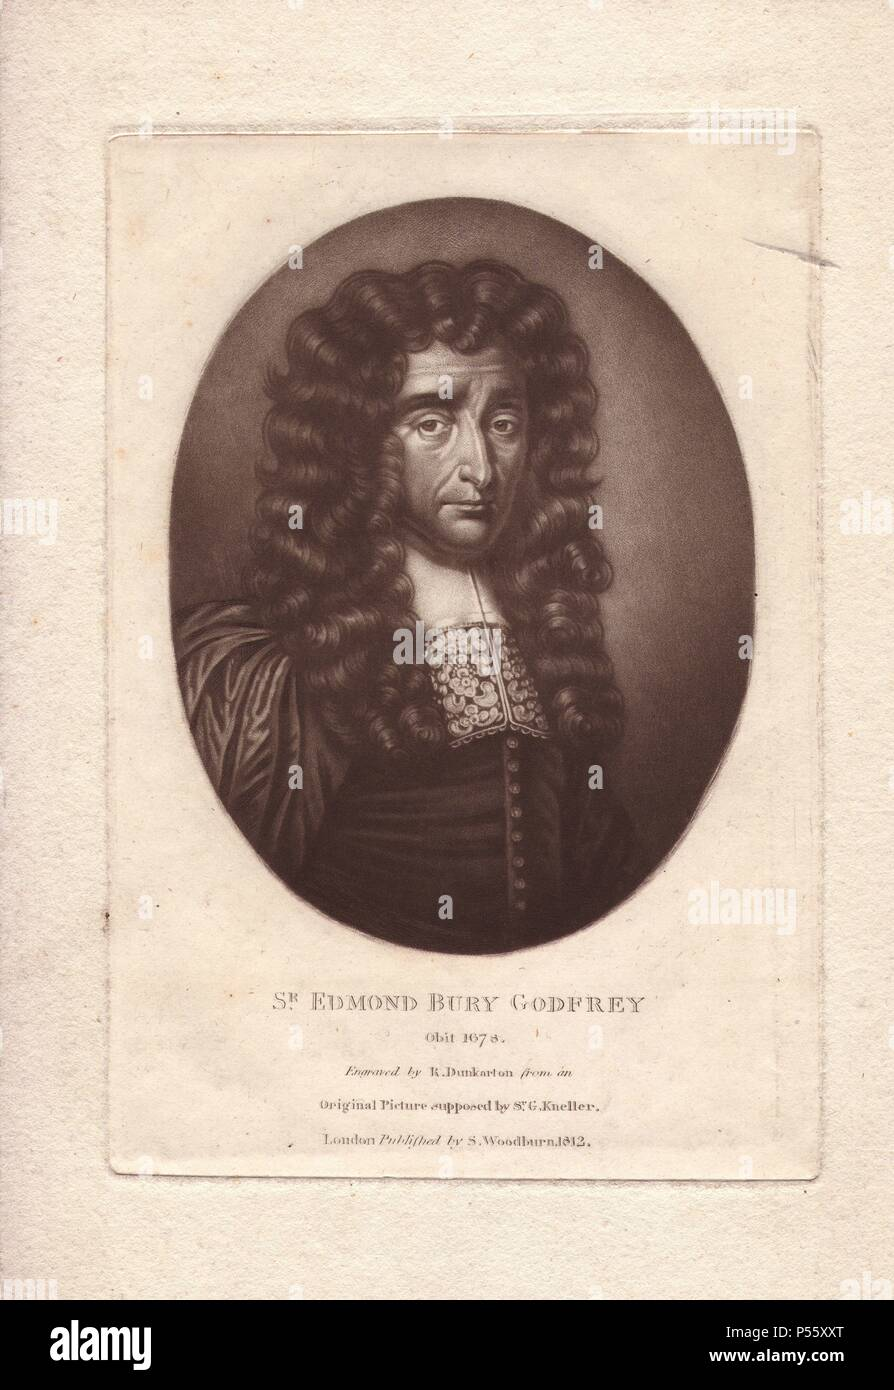 "Sir Edmond Bury Godfrey (1621-1678), English magistrate whose mysterious murder was used by Titus Oates to foment anti-Catholic furore in England.. ""Engraved by R. Dunkarton from an original picture supposed by Sir G. Kneller."" Published in 1812. Stock Photo"